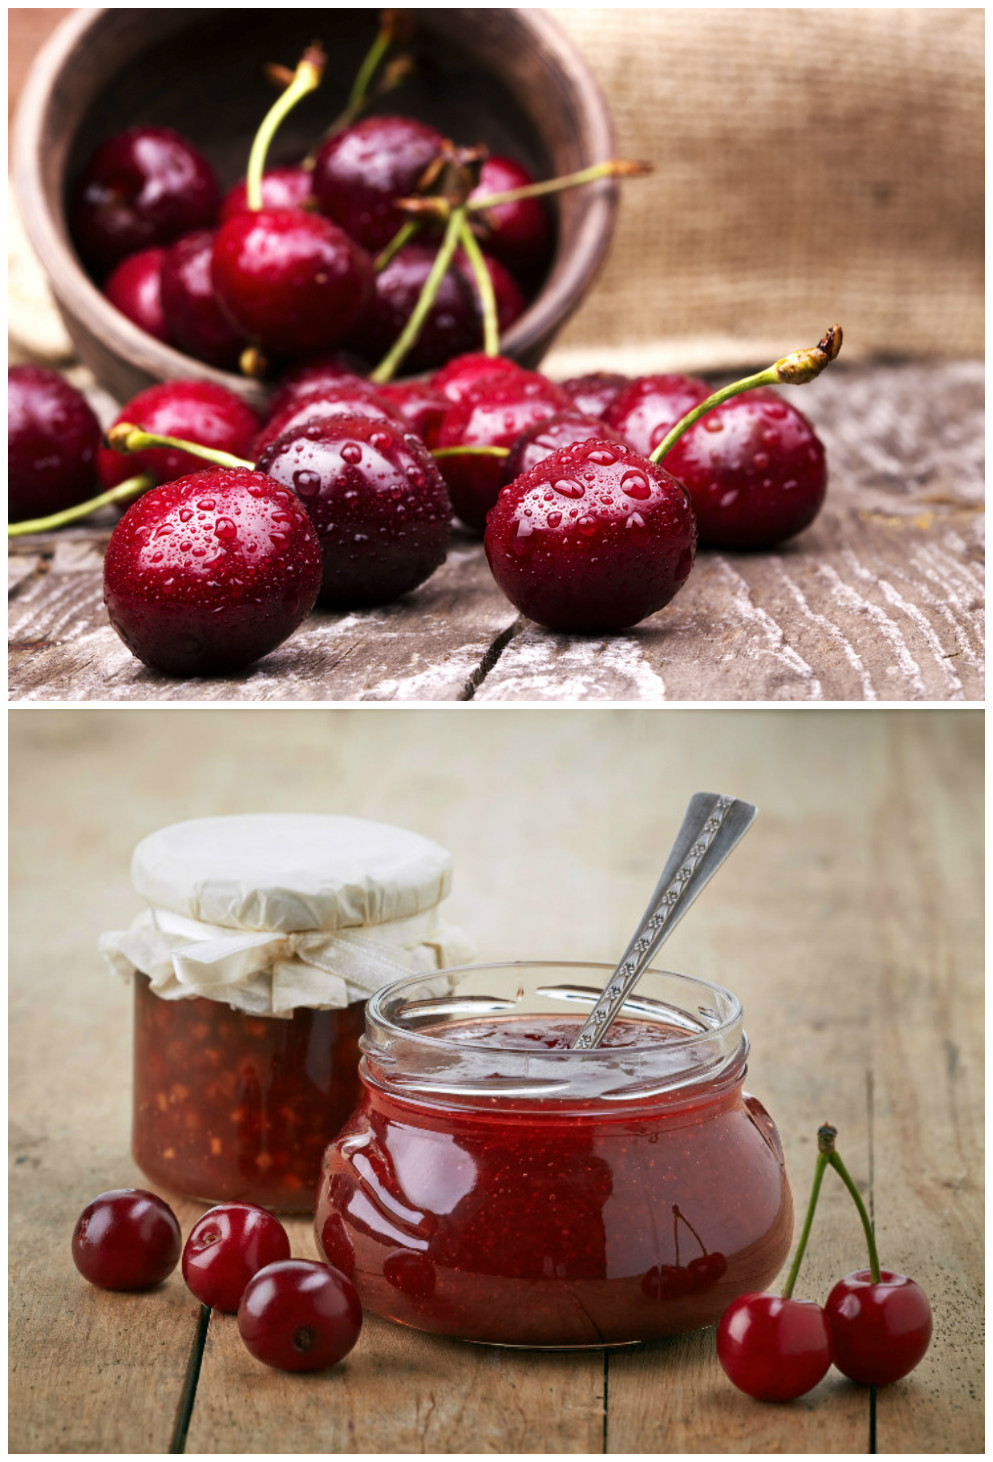 chilli cherry chutney recipe great fruit chutney to accompany meals or as a home made gift idea